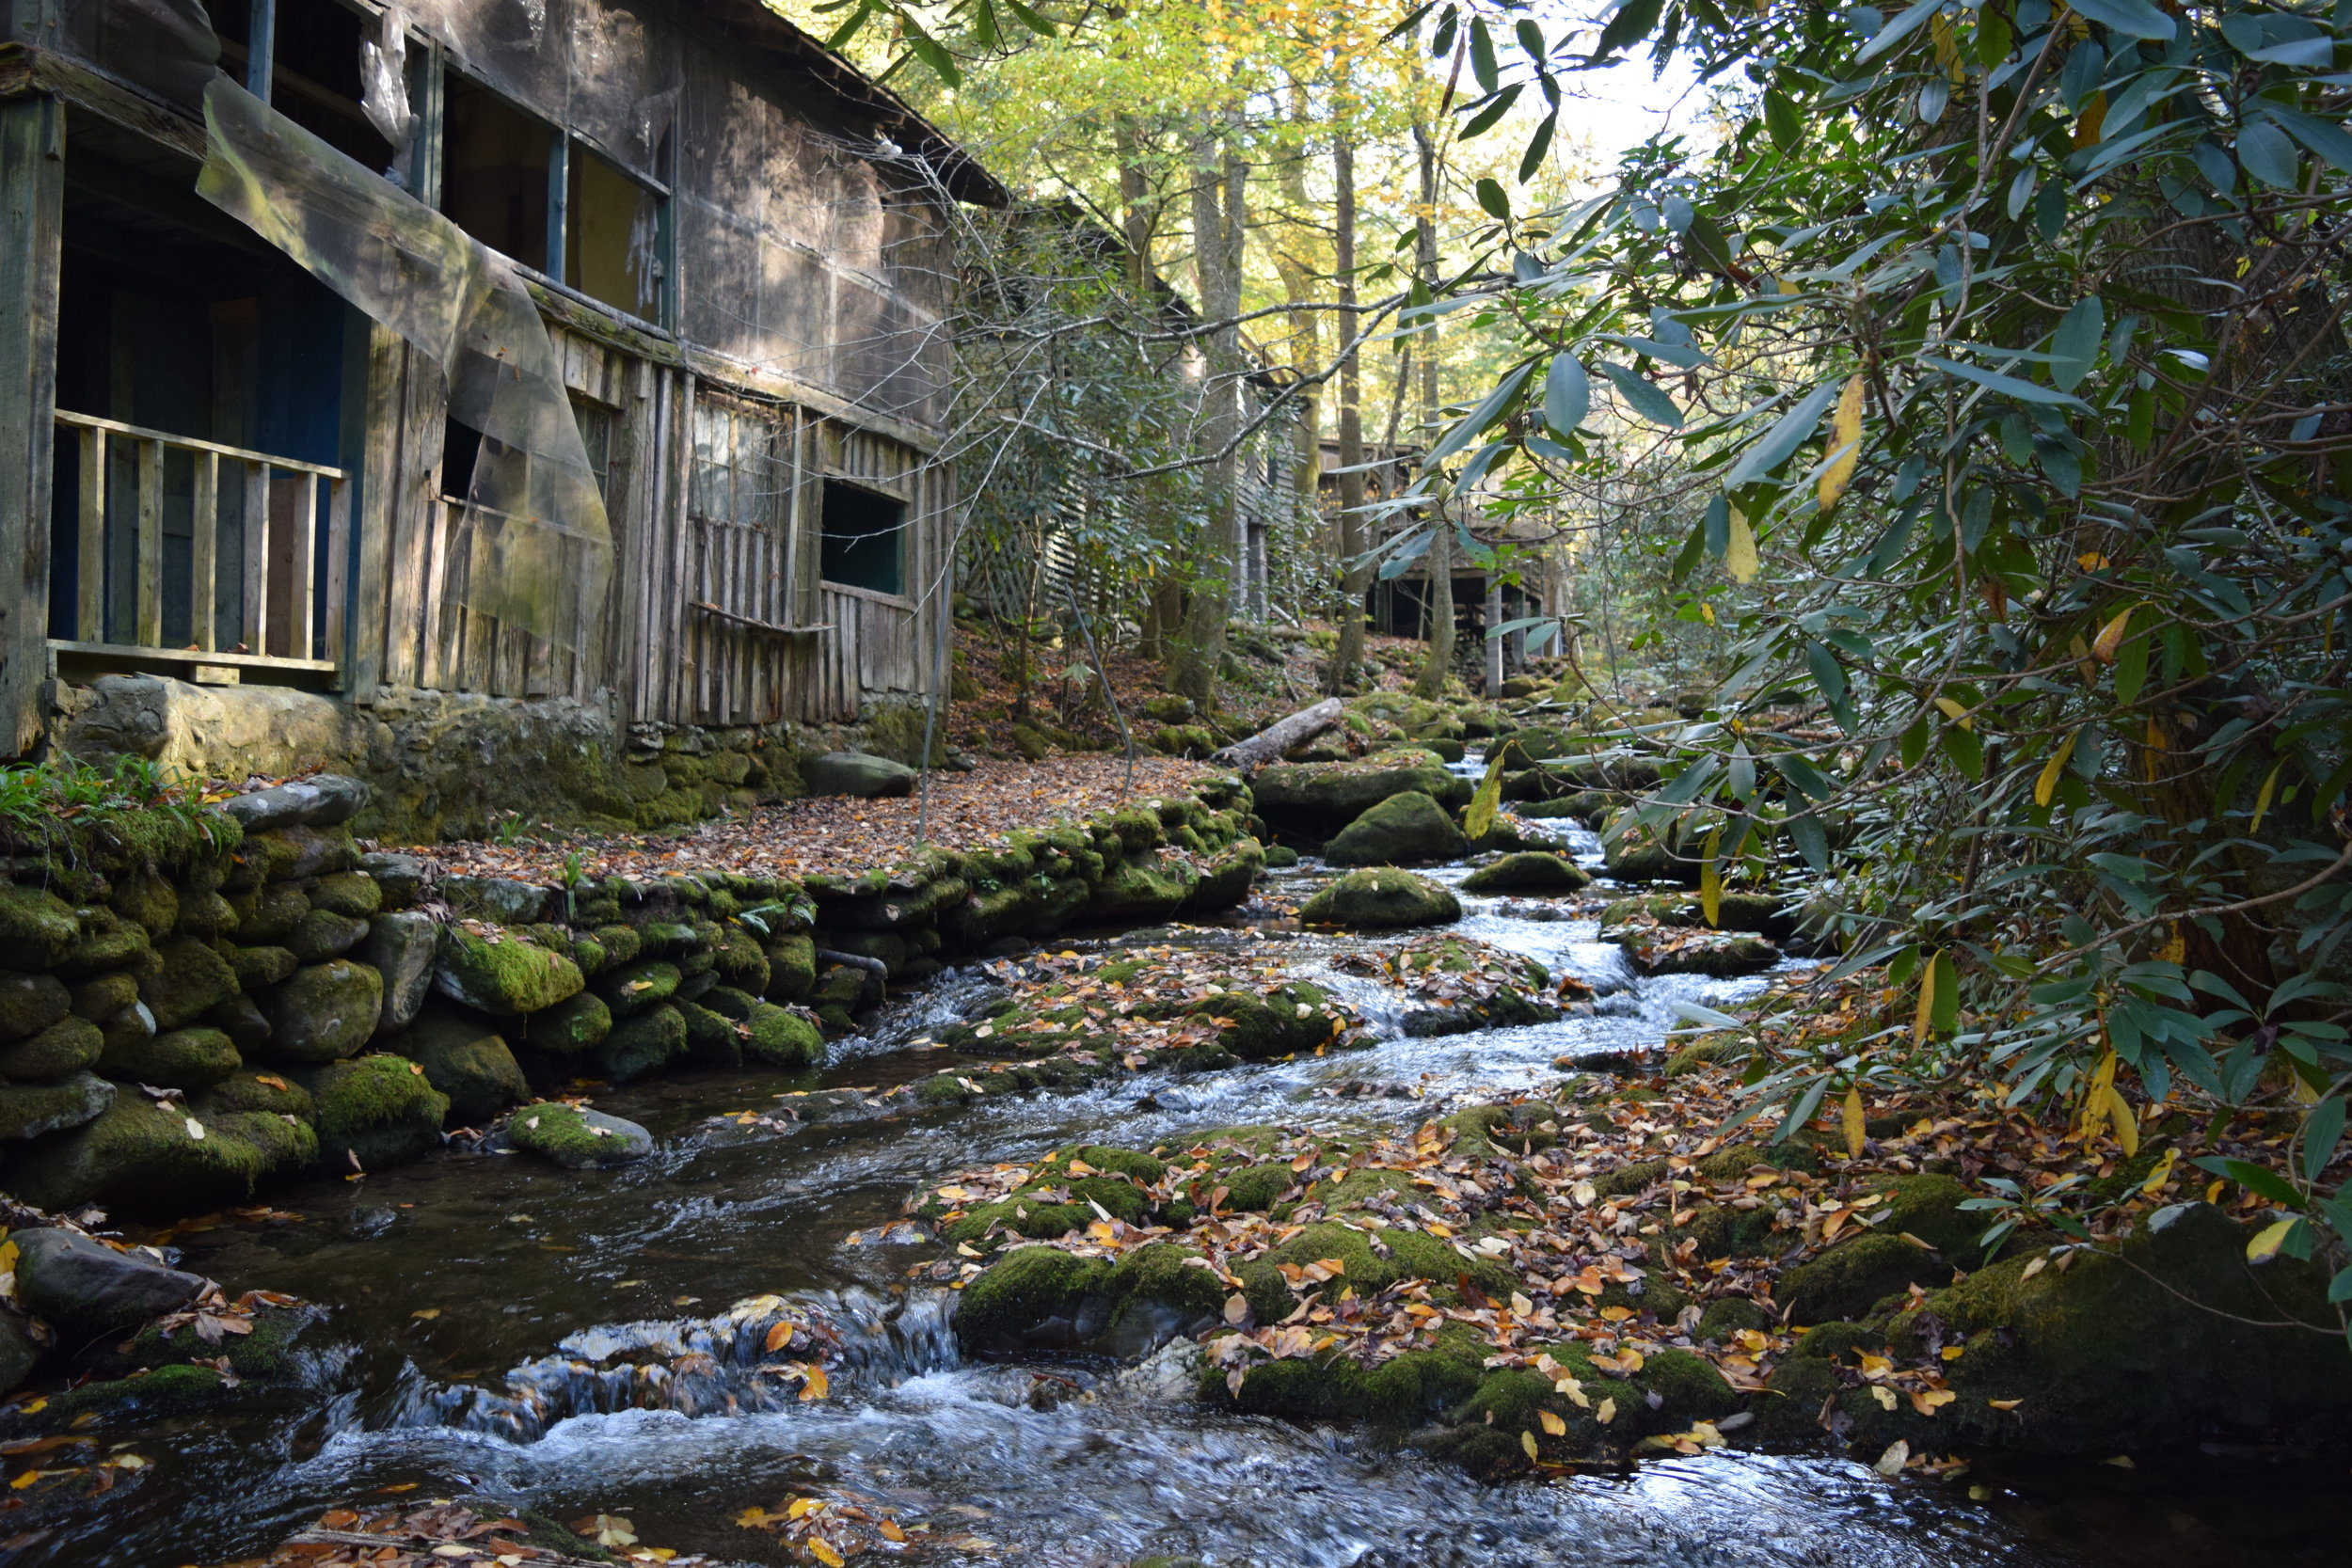 JAKES CREEK, SOCIETY HILL - ELKMONT, GREAT SMOKY MOUNTAINS NATIONAL PARK